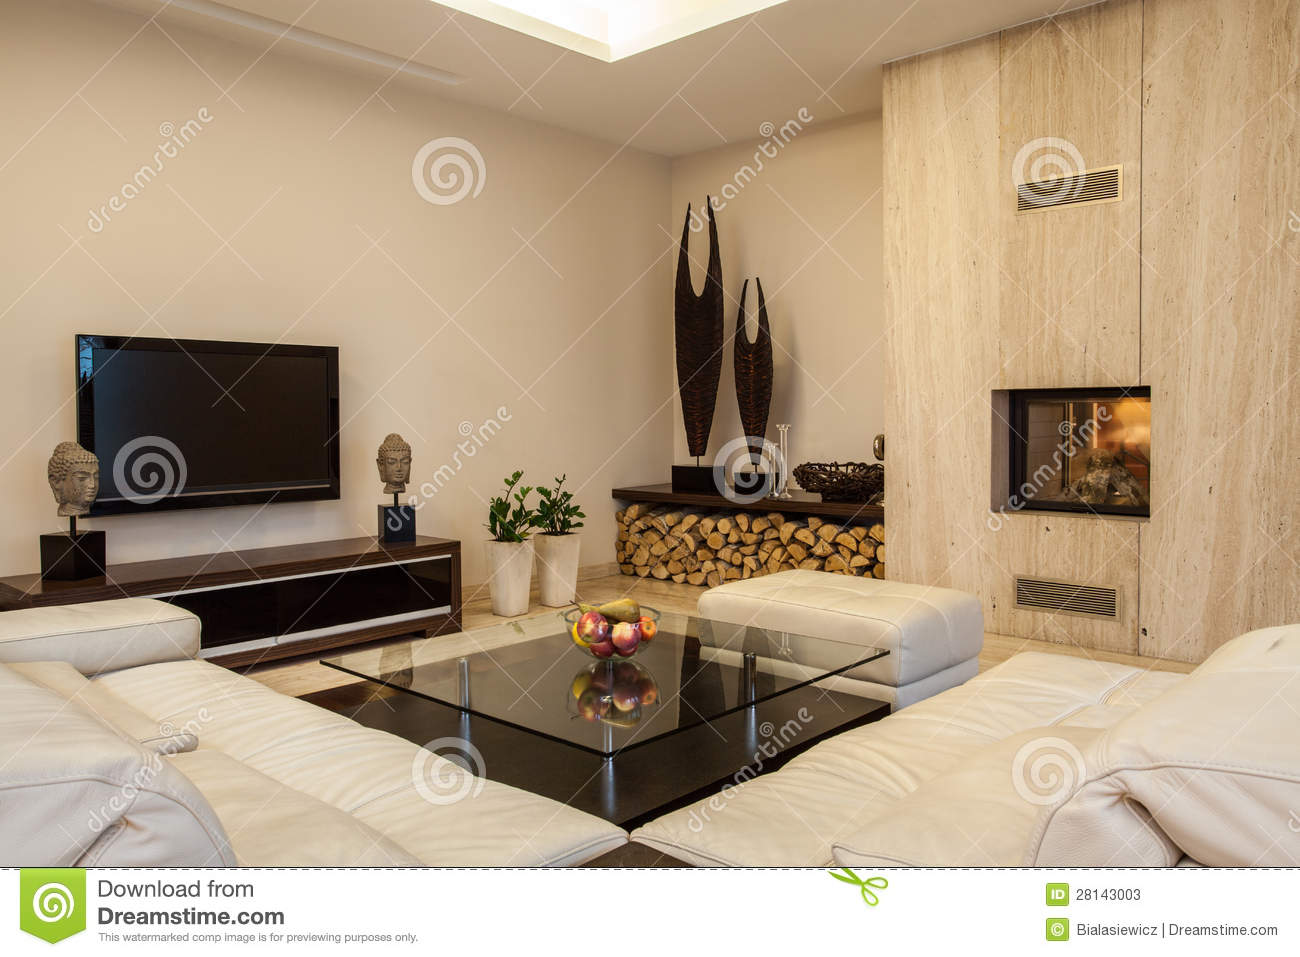 Modern hotel room interior stock photo image 18197840 - Travertine House Interior Creative Solutions Stock Photos